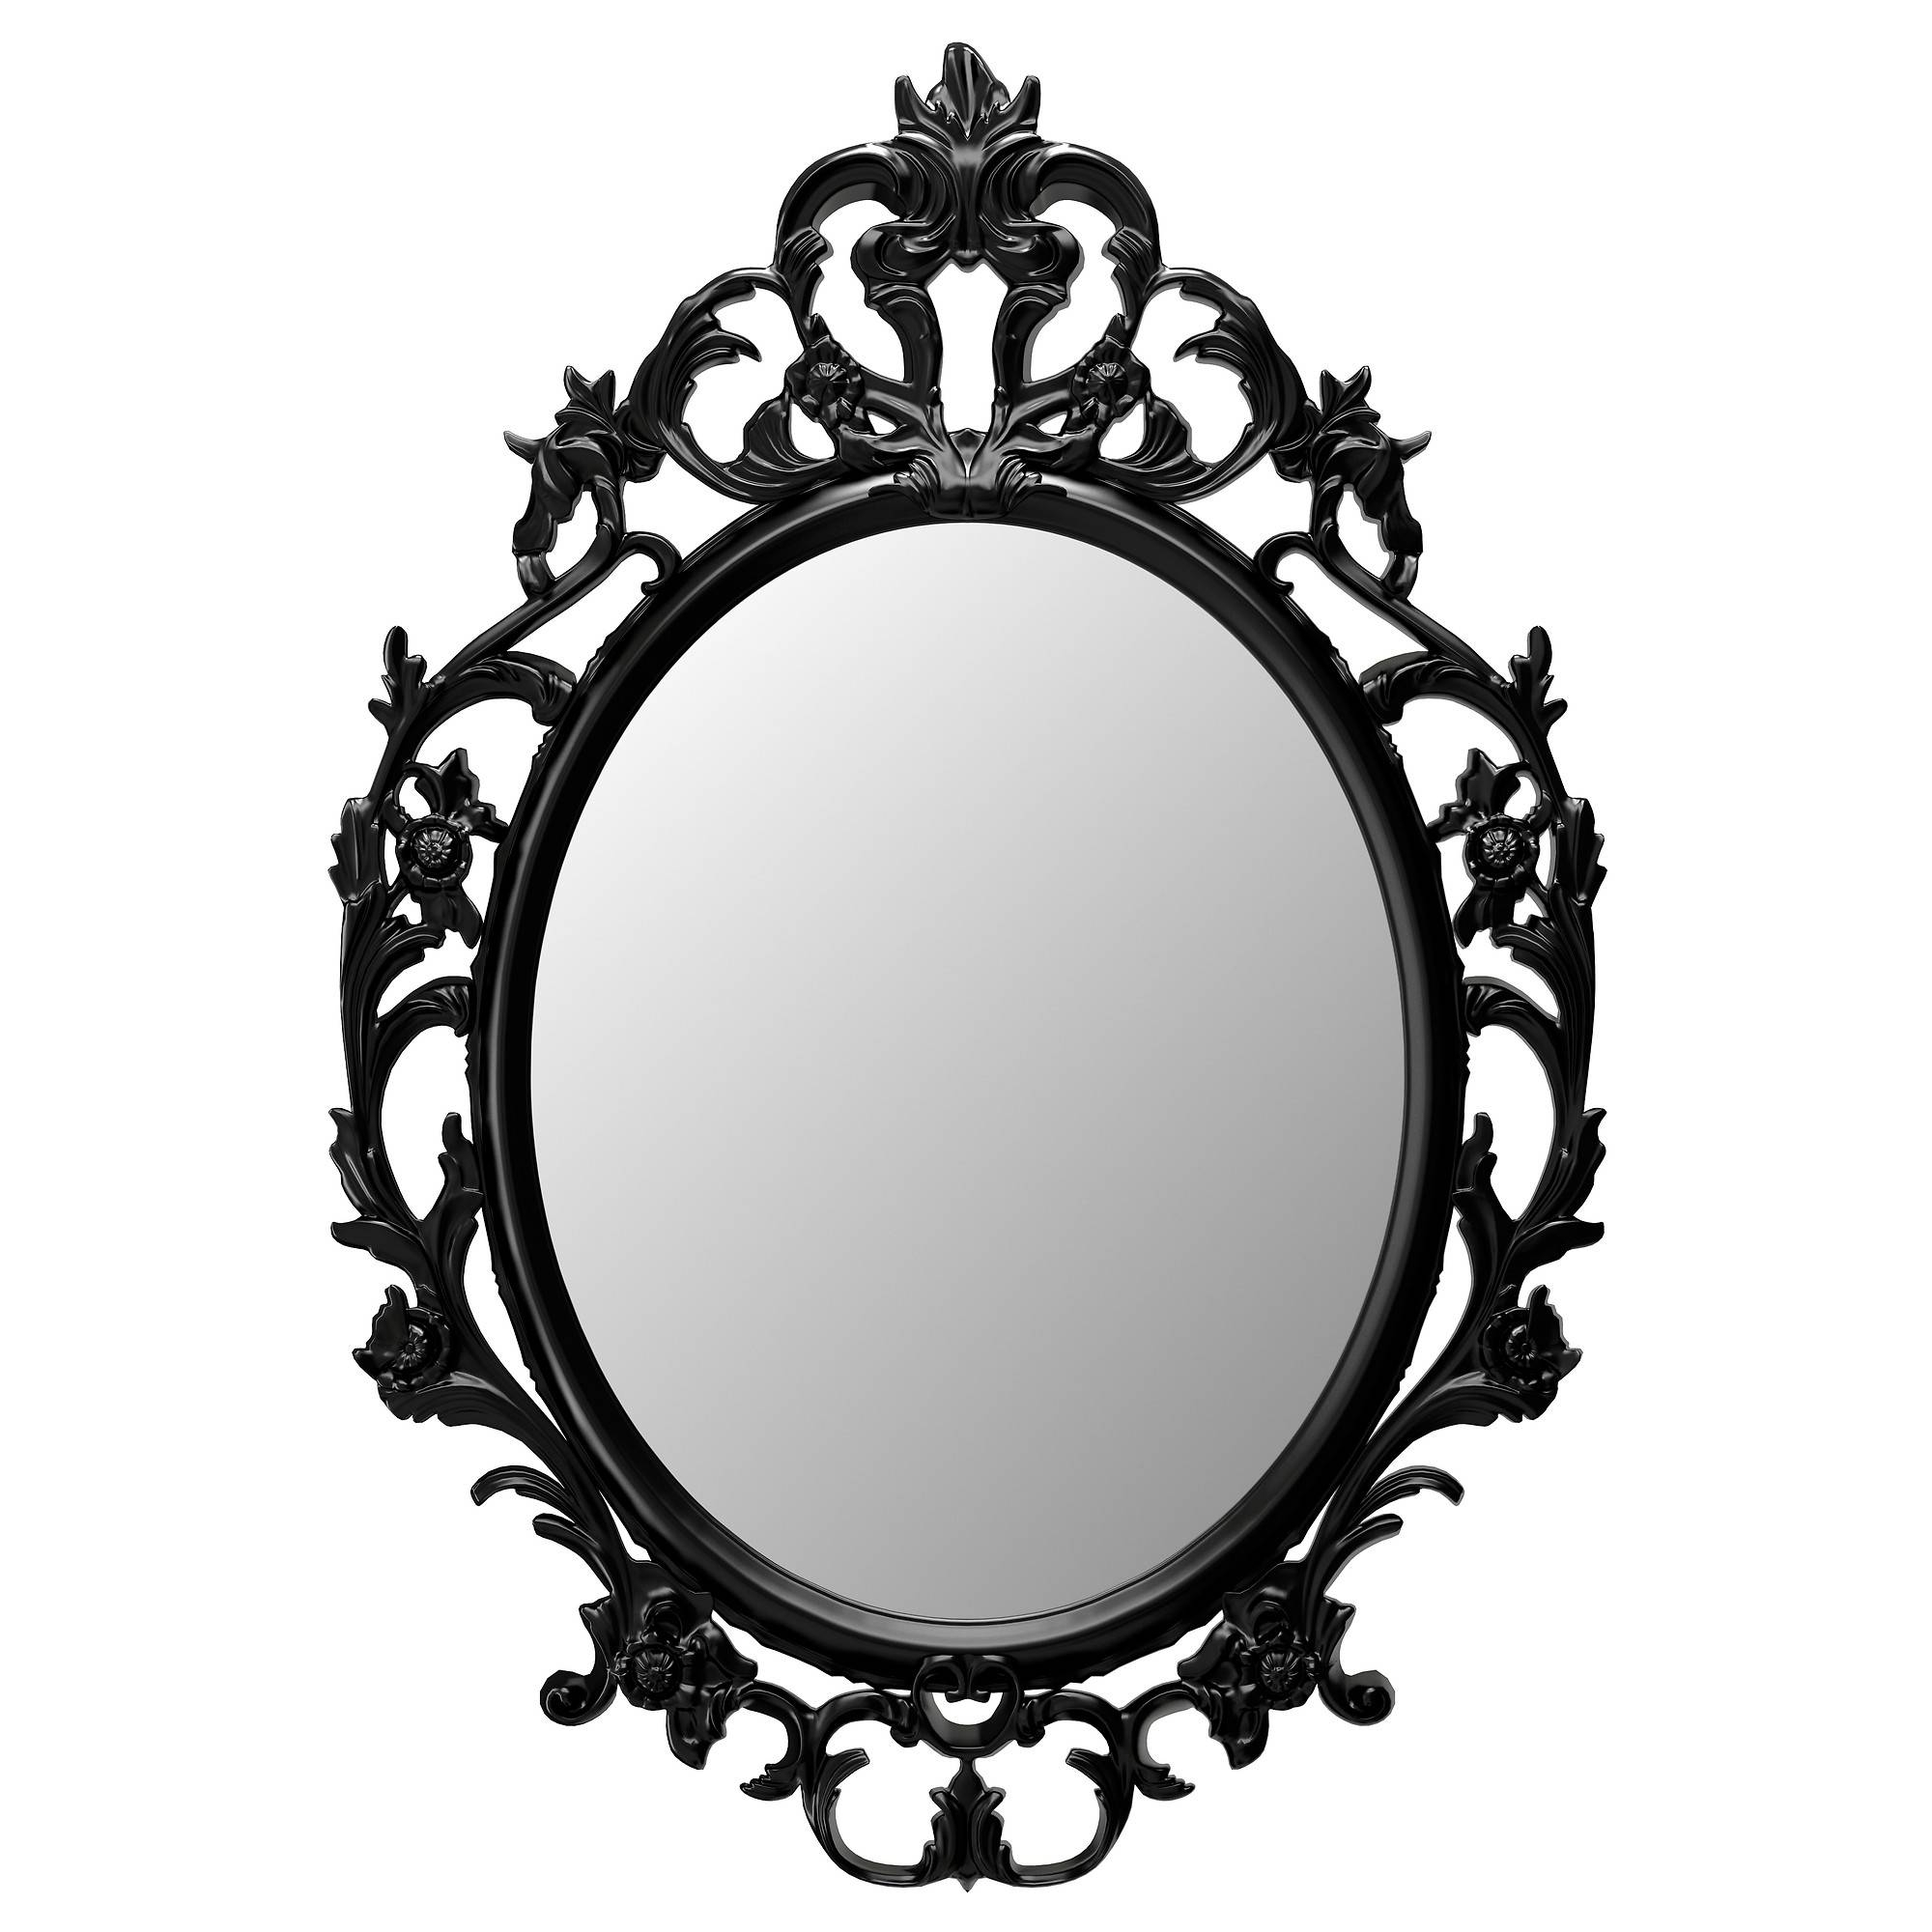 Ung Drill Mirror – Ikea For Black Baroque Mirrors (View 23 of 25)